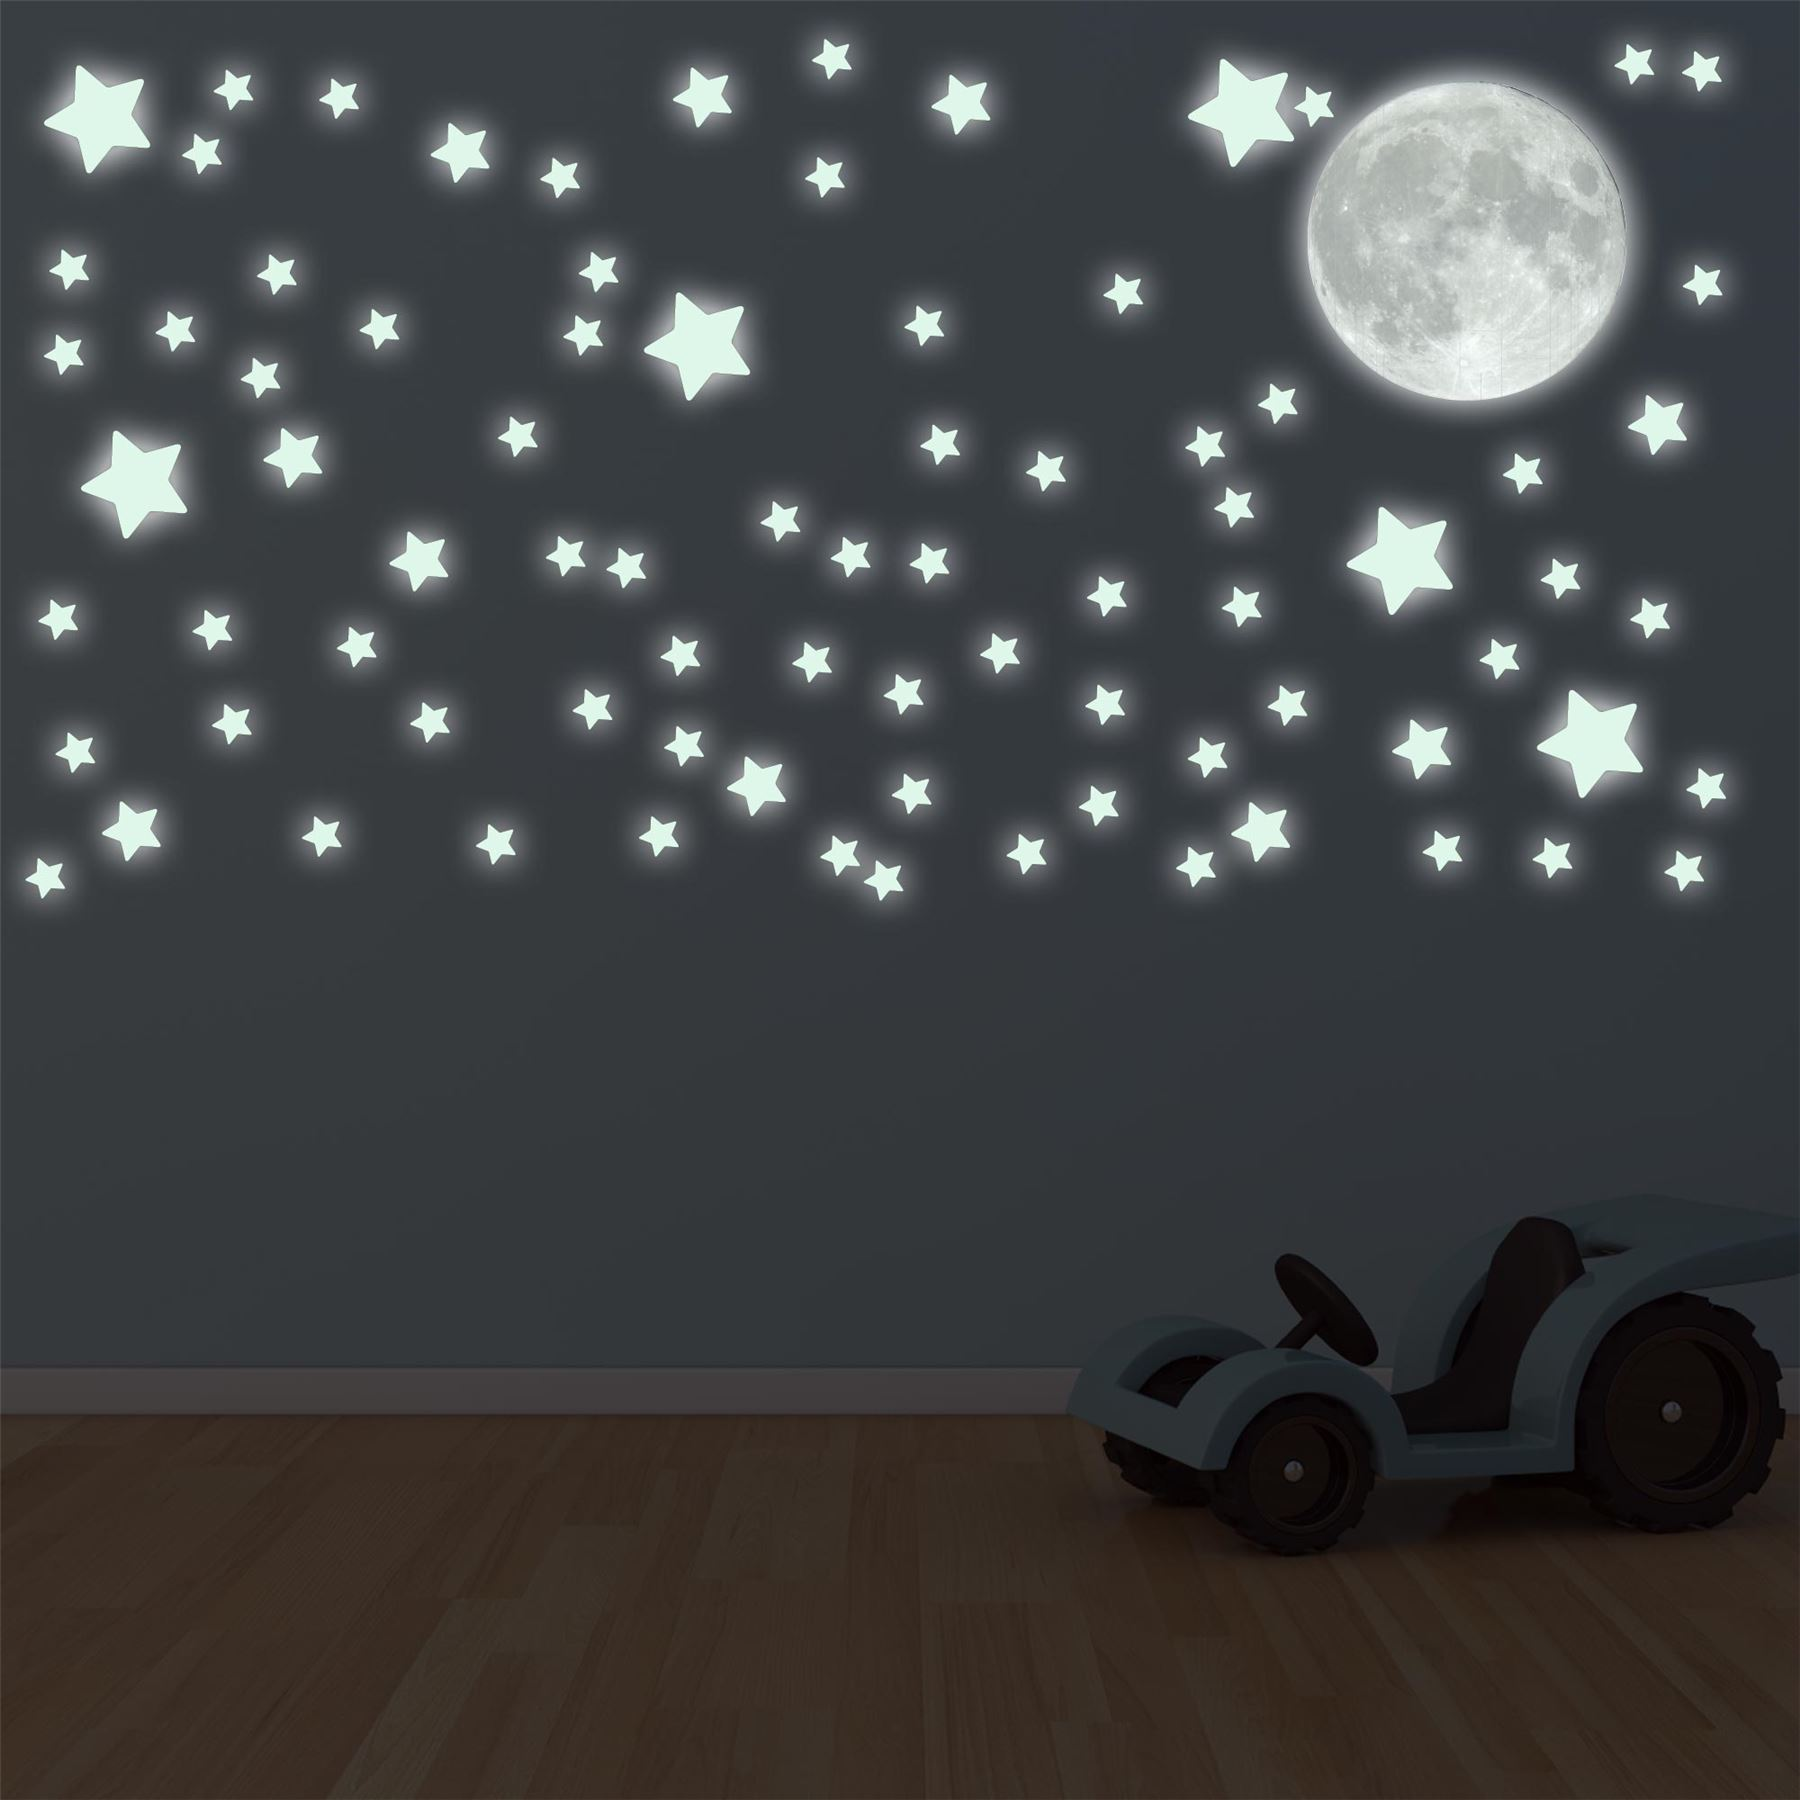 glow in the dark moon and stars wall sticker decal ebay glow in the dark star mix wall stickers glow in the dark